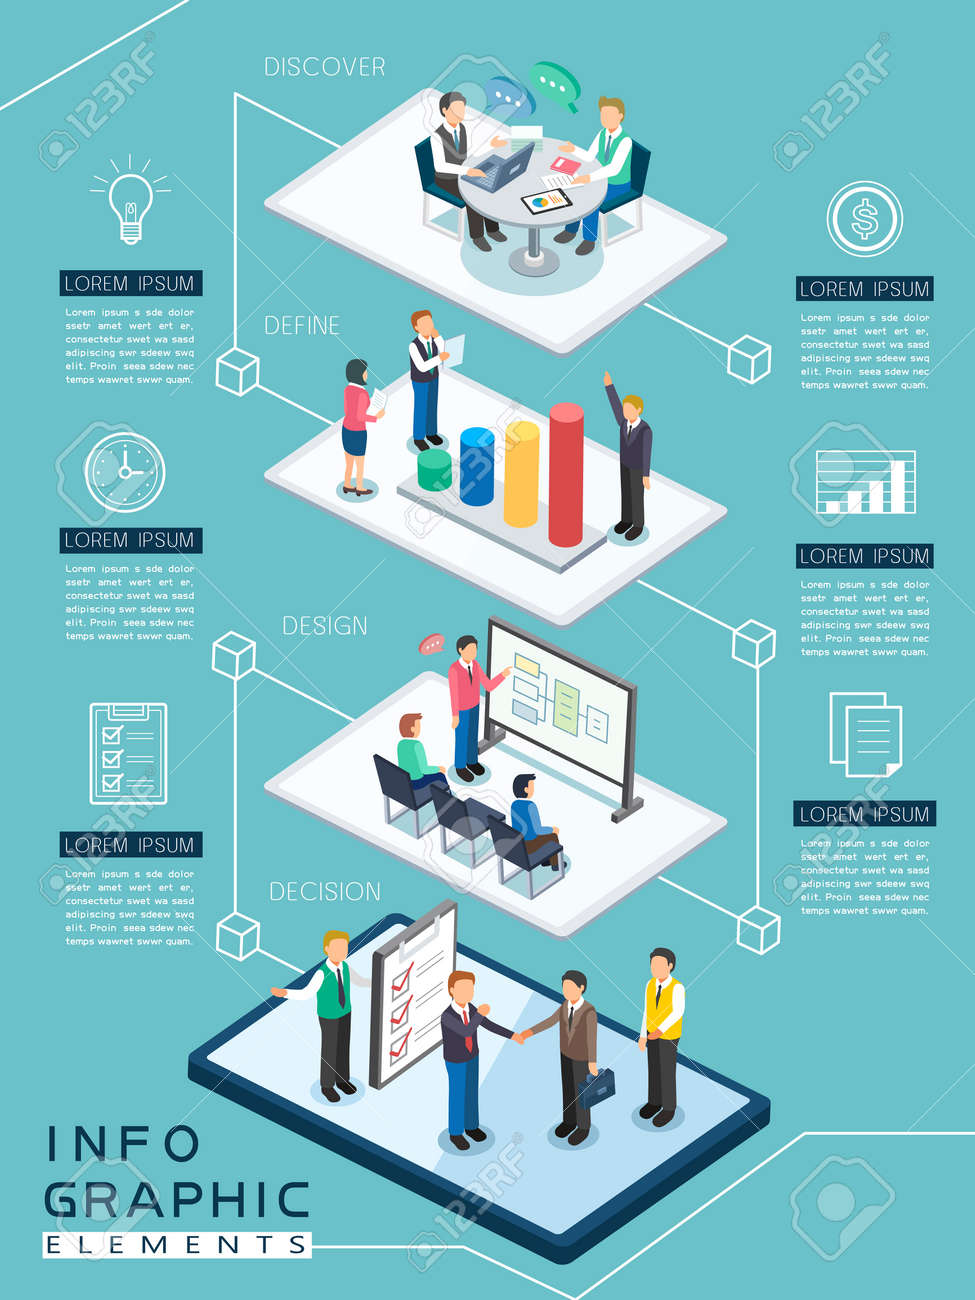 meeting process infographic template design in flat 3d isometric style Stock Vector - 53128174